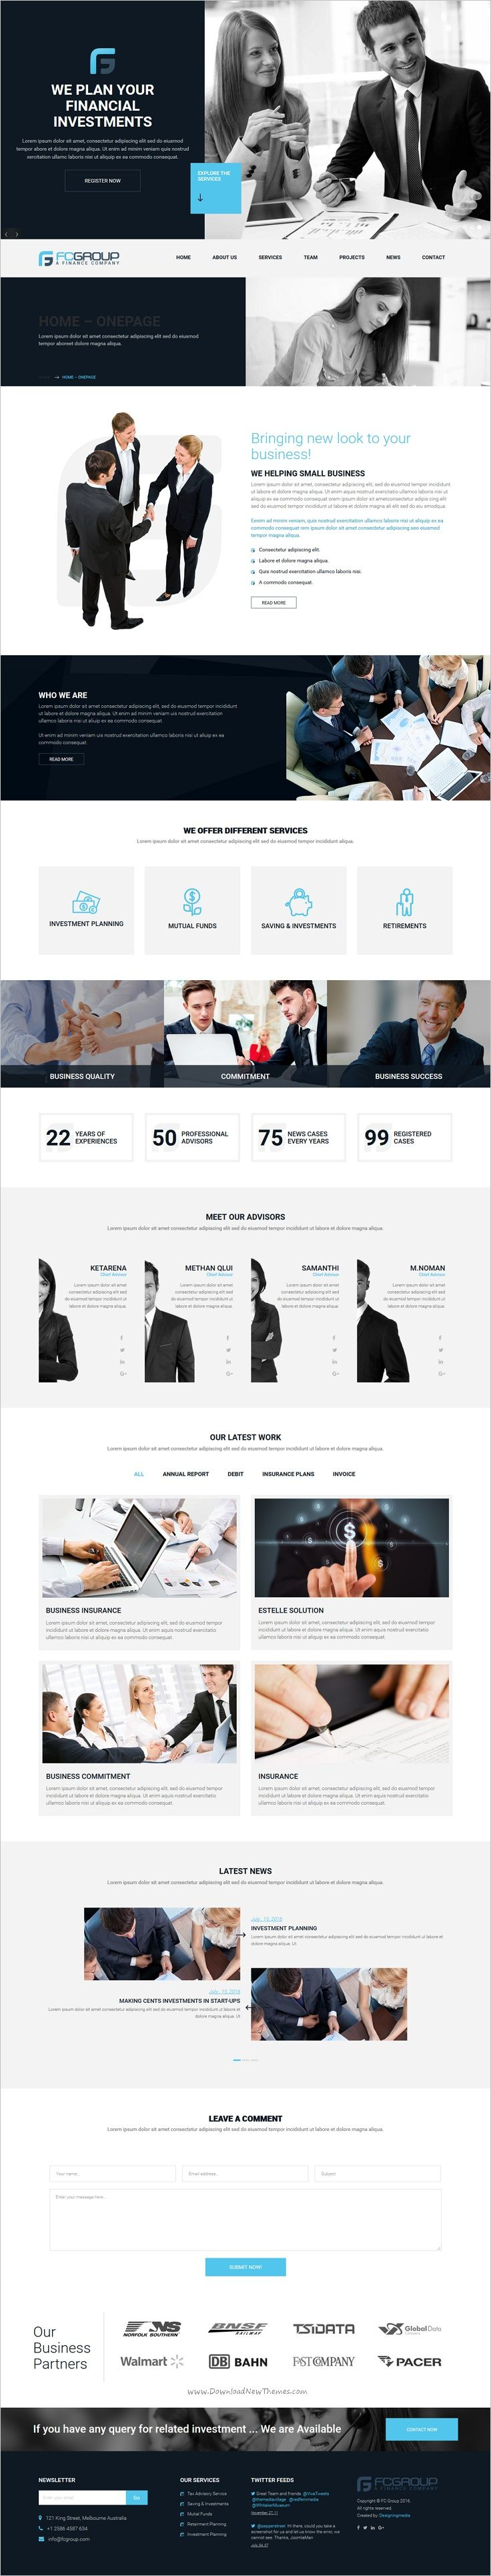 Finance group is minimal design premium #WordPress #theme for multipurpose #business website download now➯ https://themeforest.net/item/finance-group-corporate-wordpress-theme/16468806?ref=Datasata